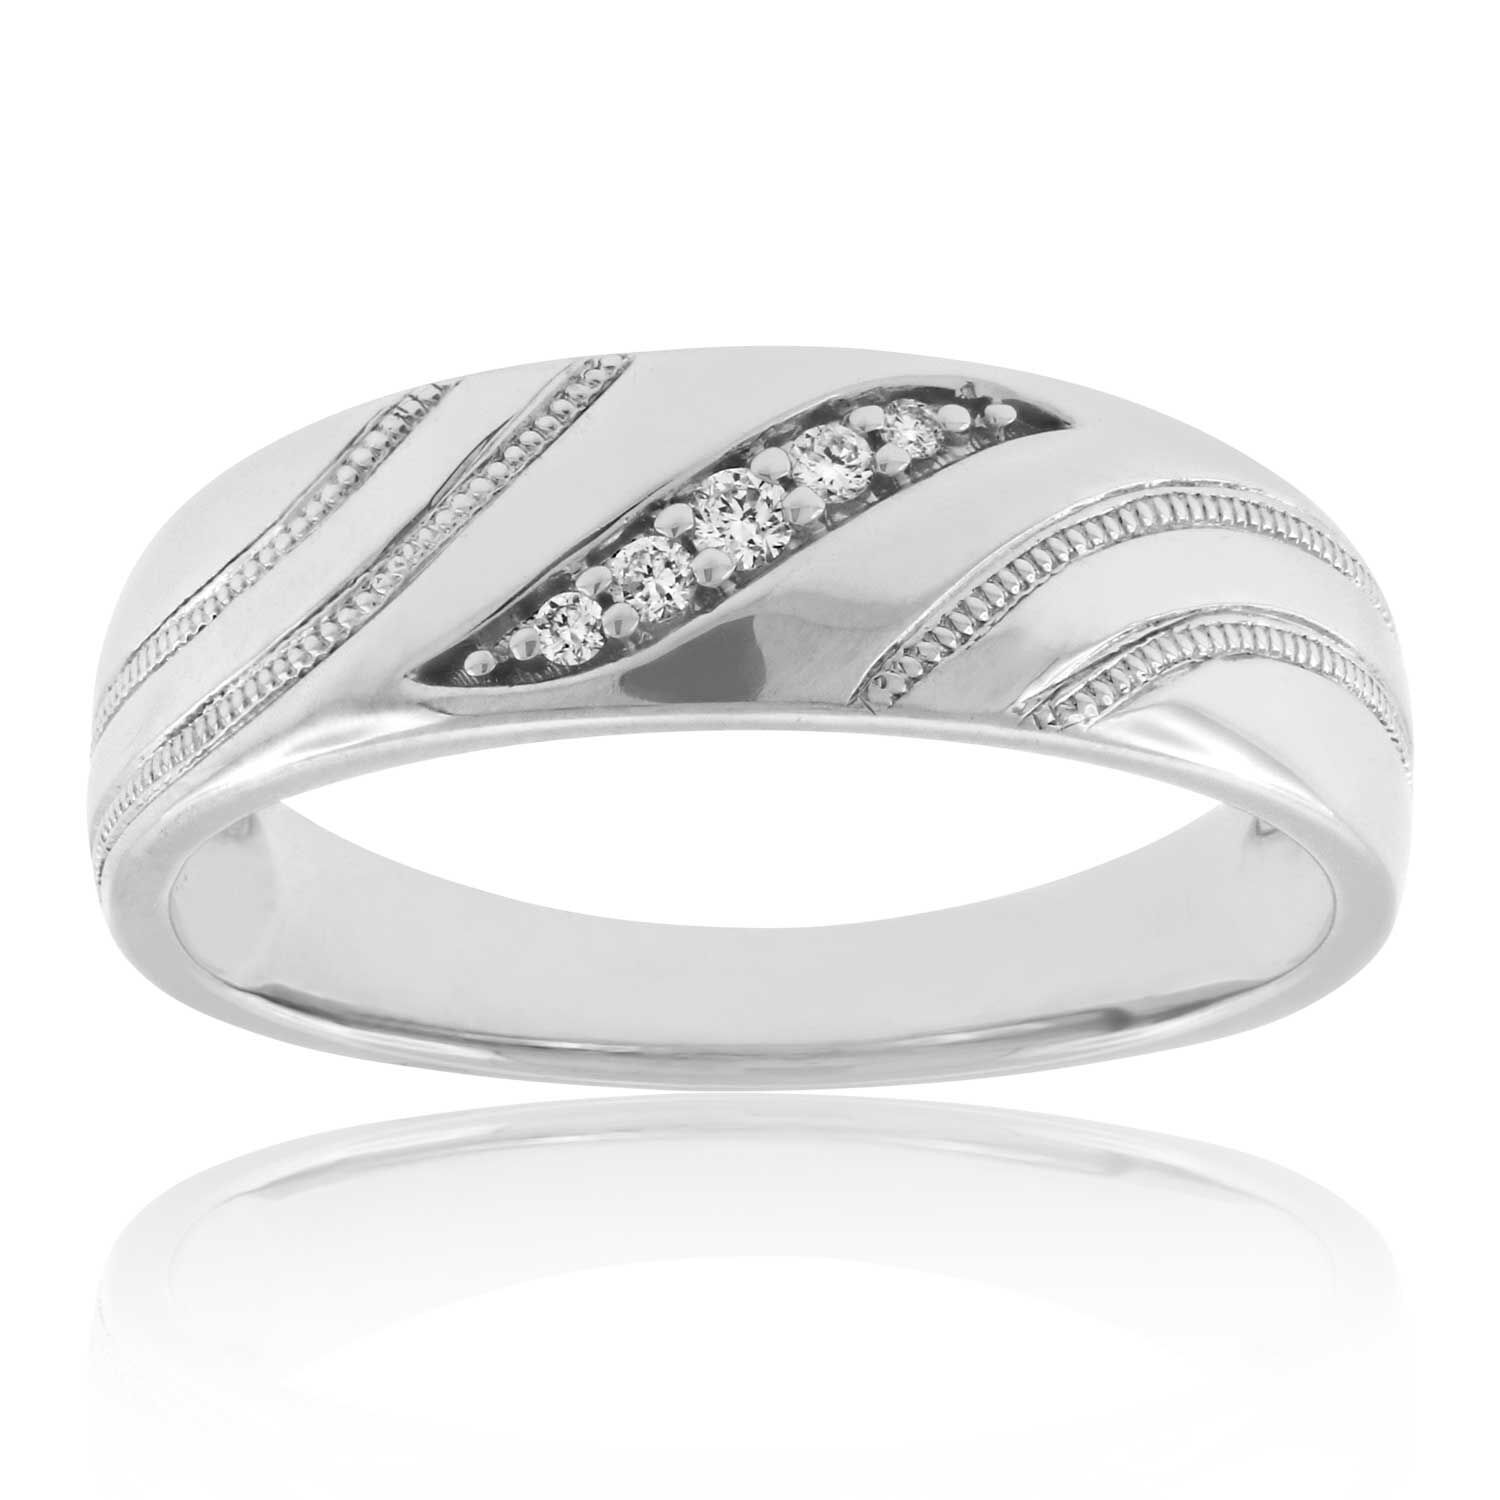 Mens Wedding Rings Bands Ben Bridge Jeweler